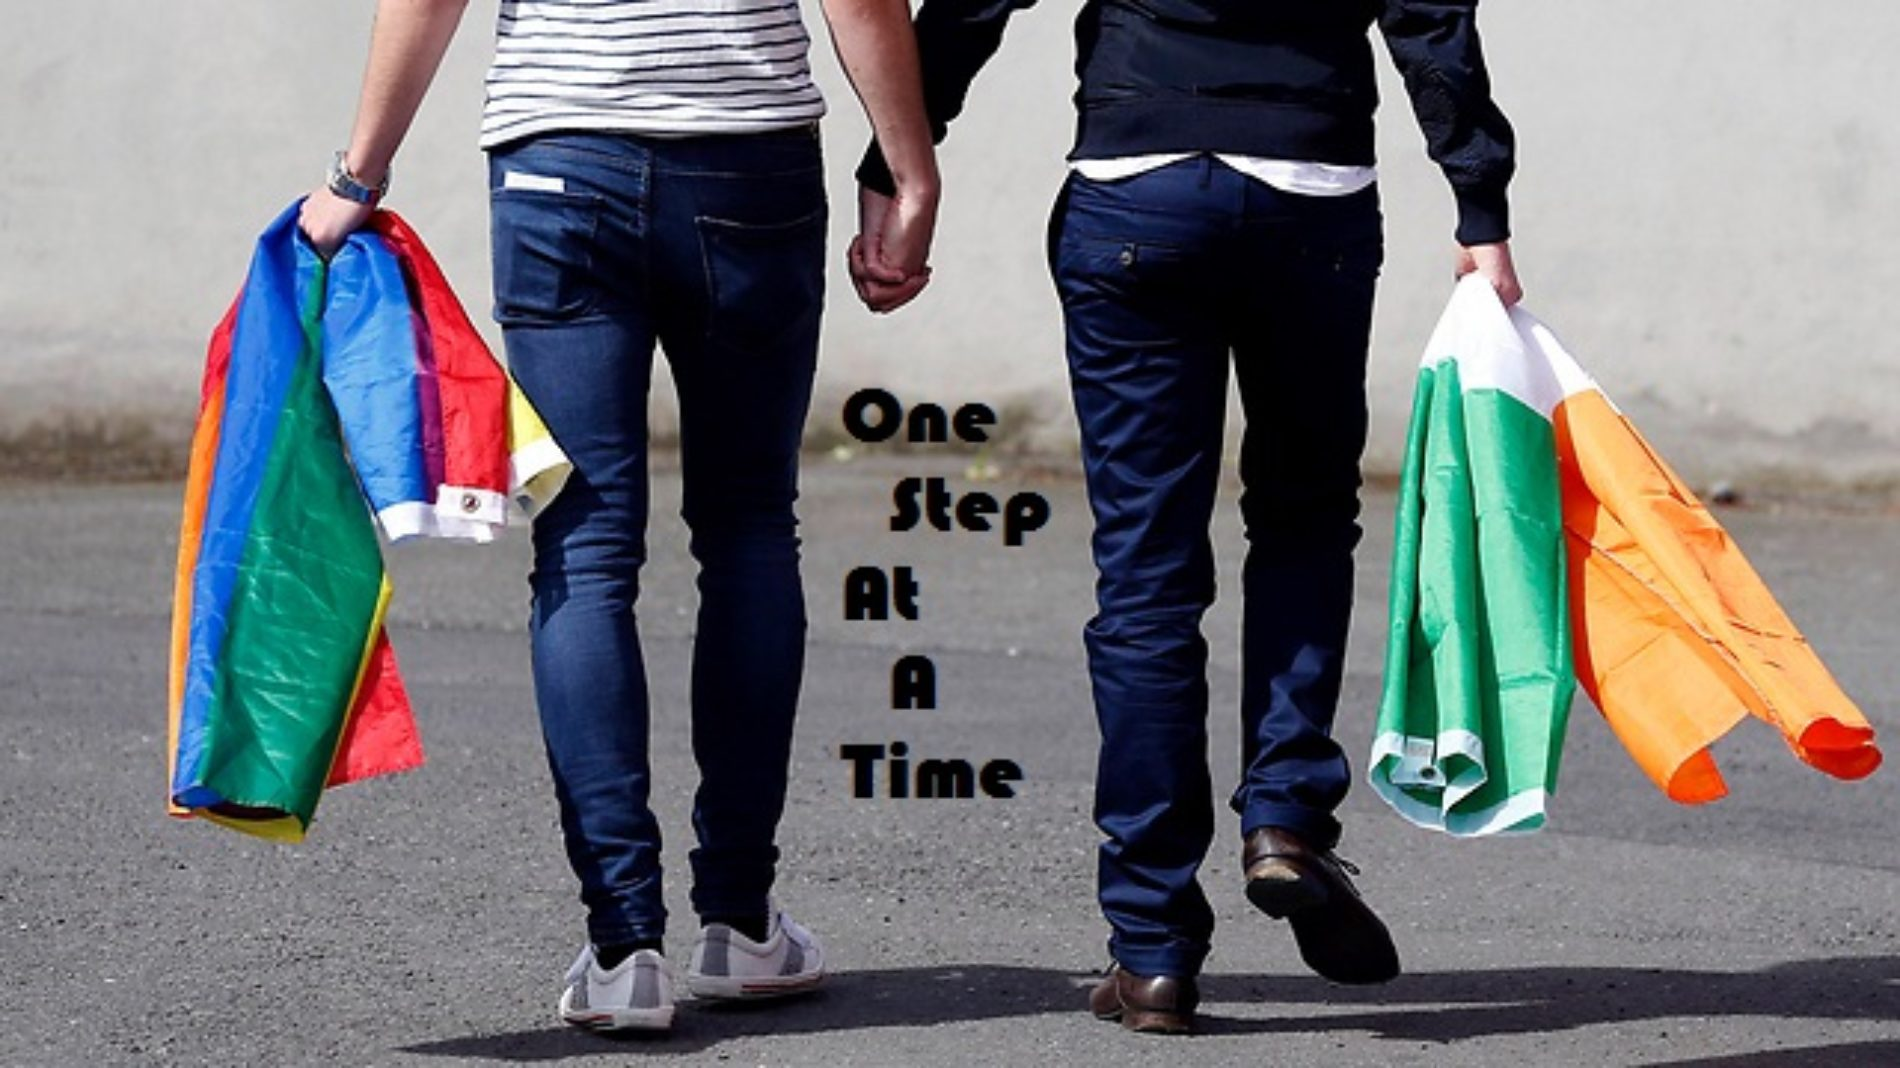 ONE STEP AT A TIME (Episode 3)